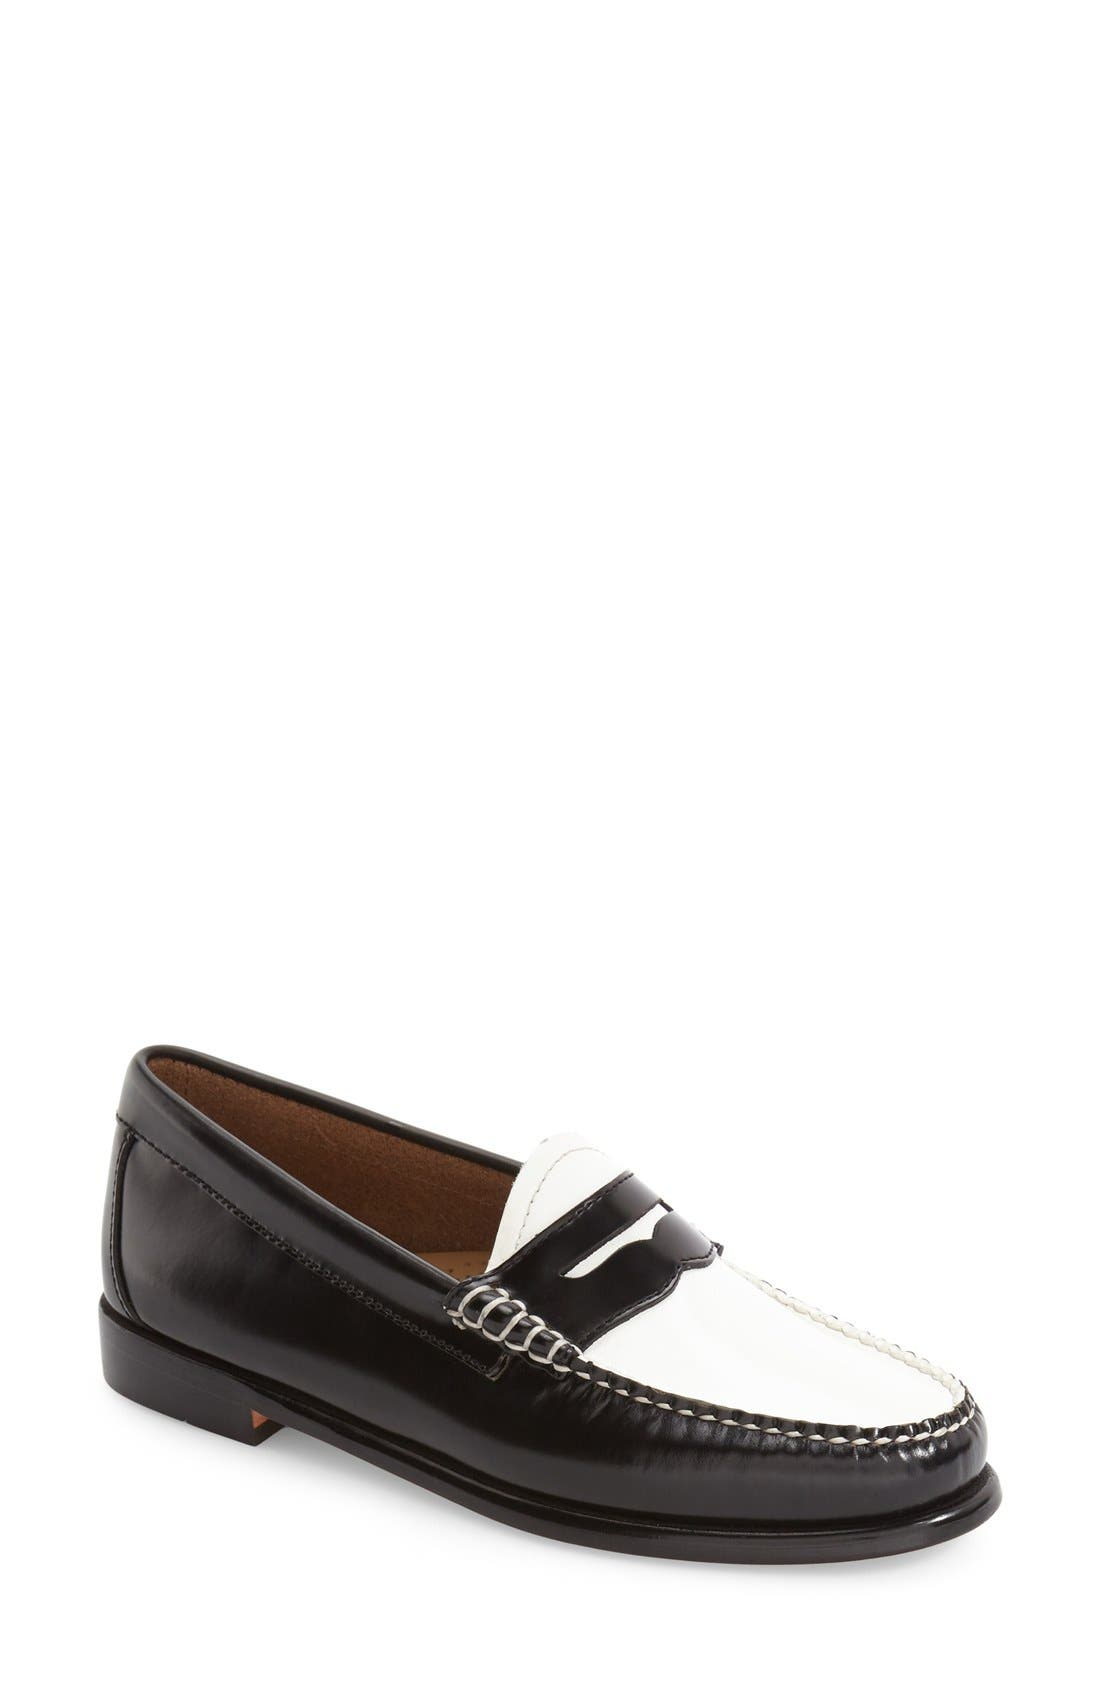 'Whitney' Loafer,                             Main thumbnail 24, color,